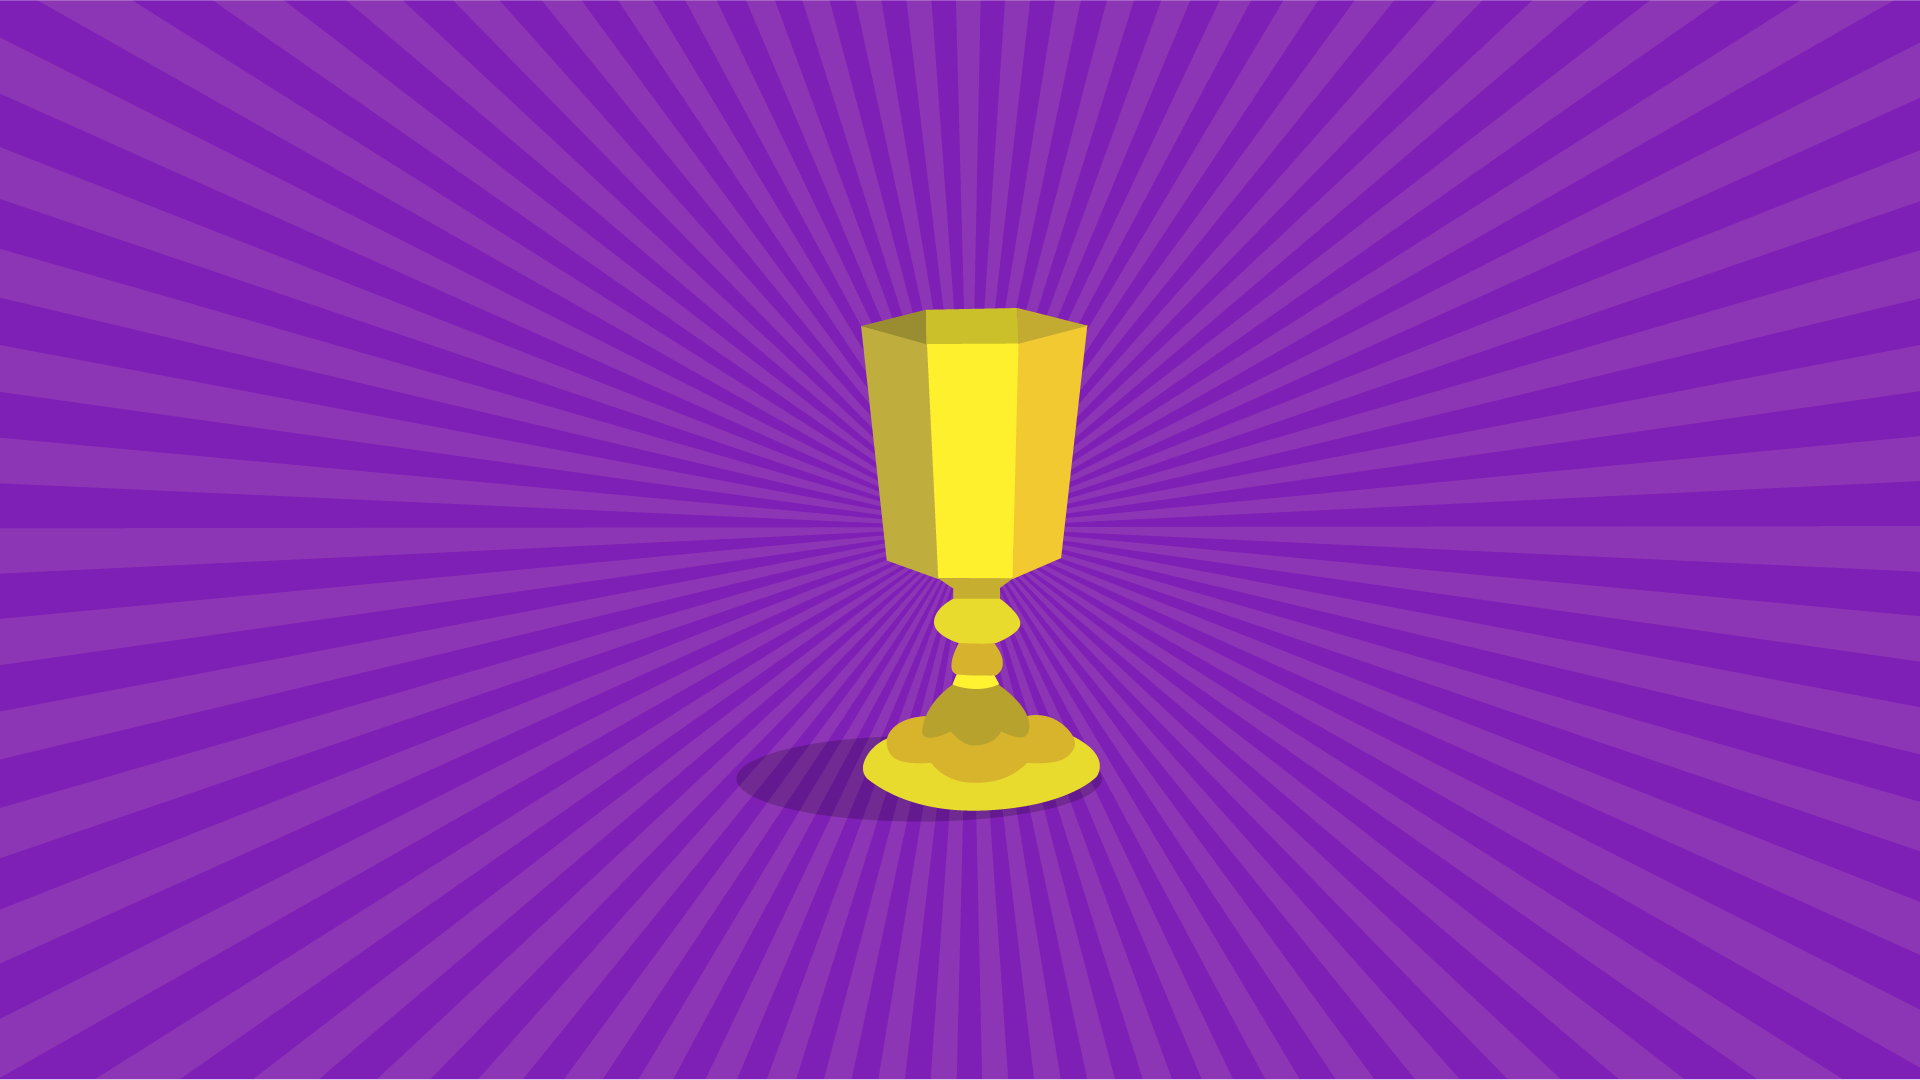 Kiddush cup meaning